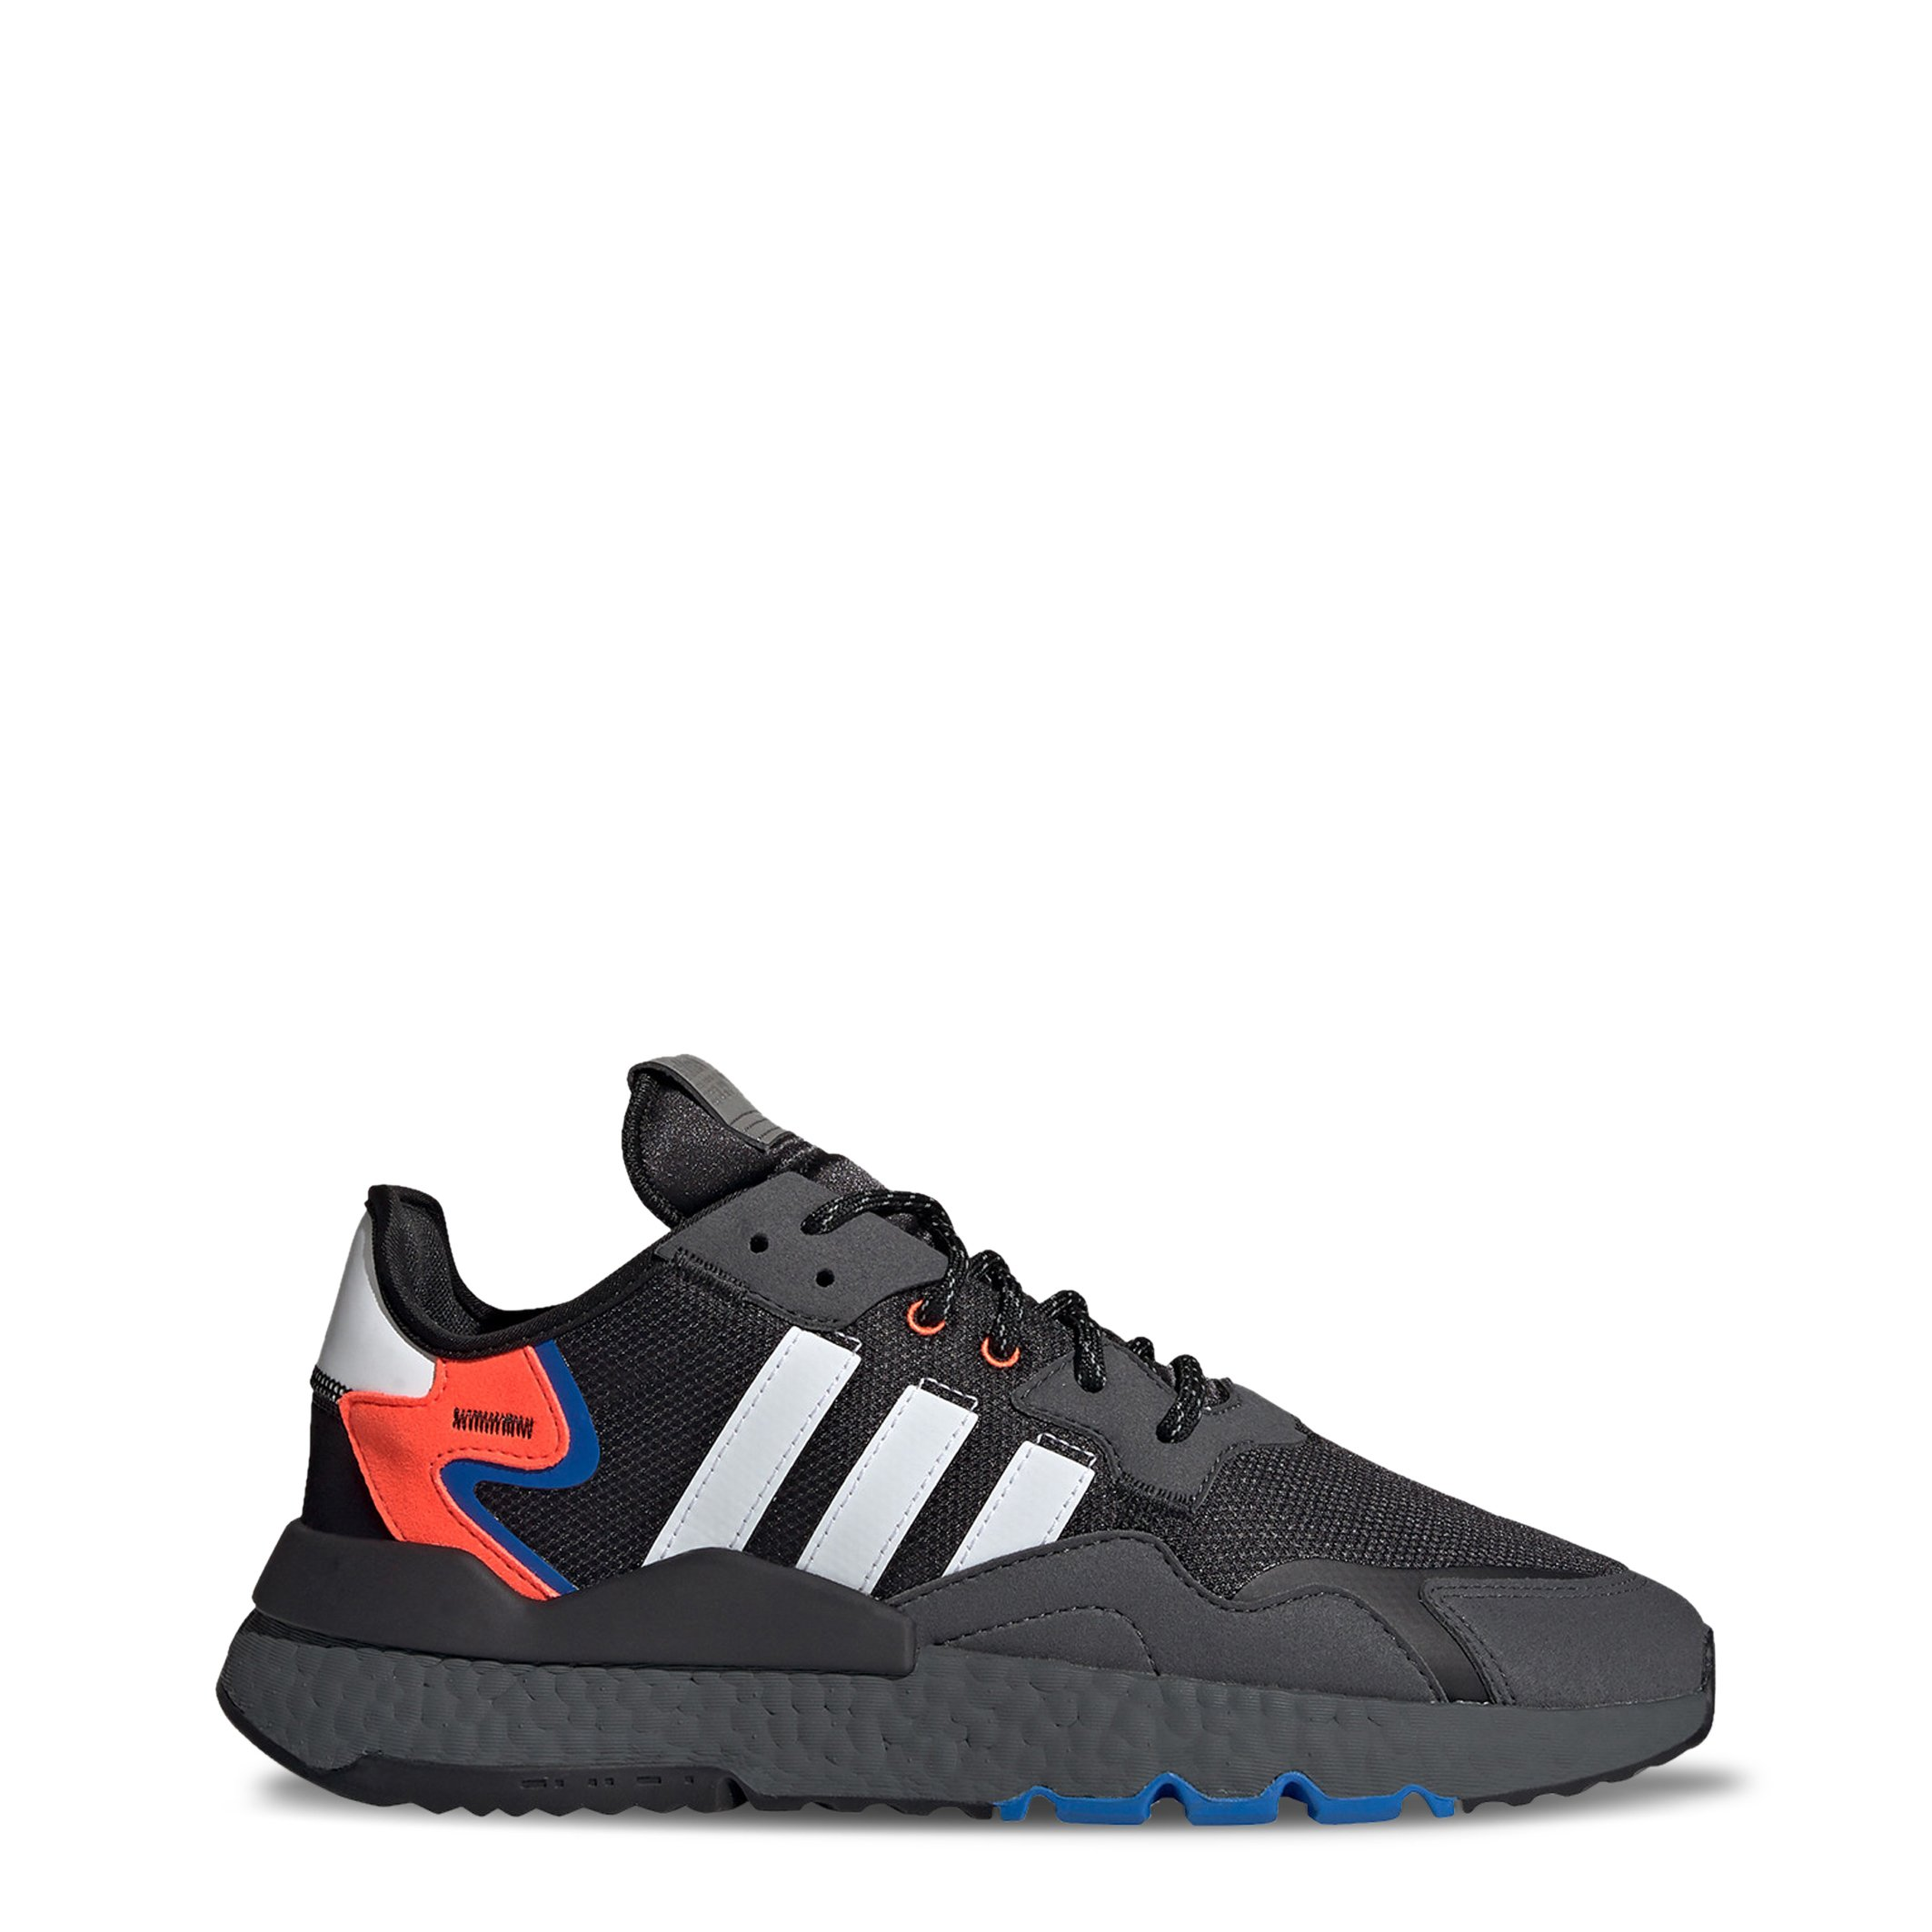 Adidas Men's Nite Jogger Trainers Various Colours EE6254 - black-1 UK 9.0